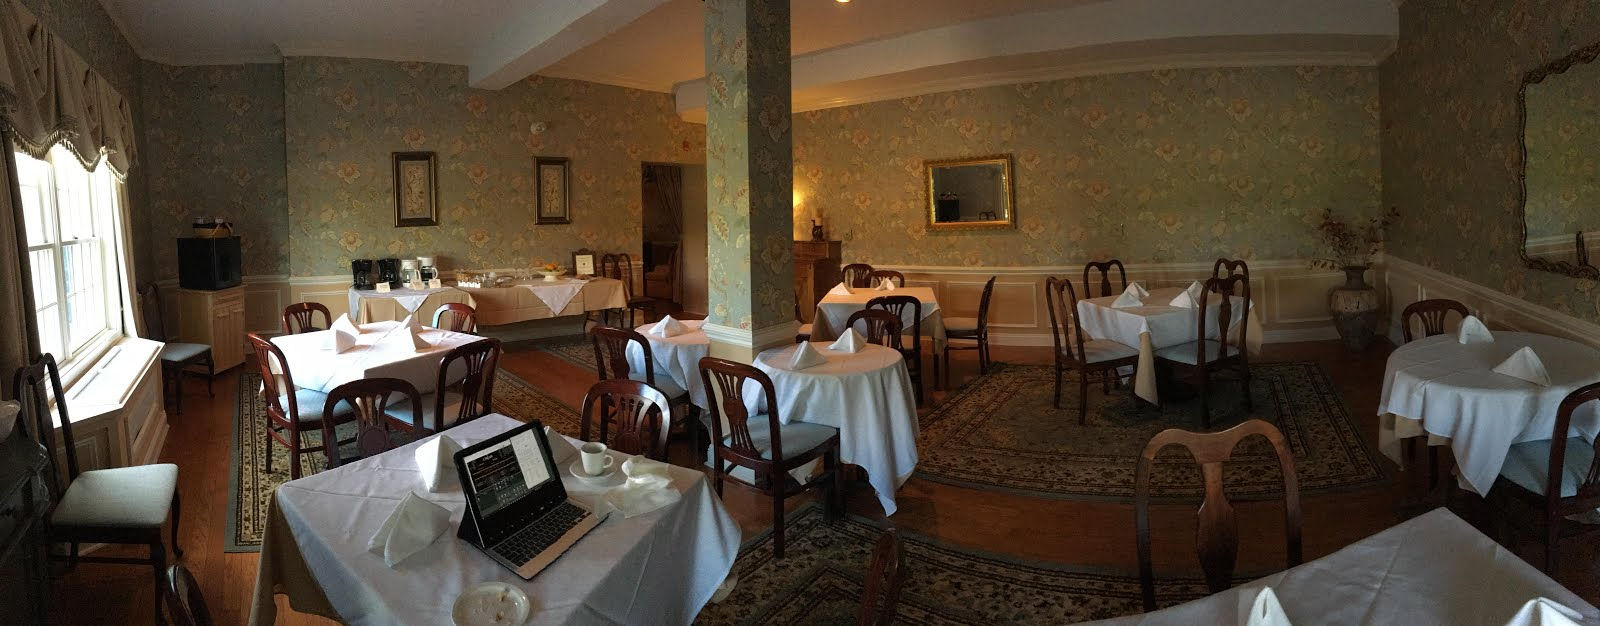 W4uoa camelot clark summit pa for Dining room operations